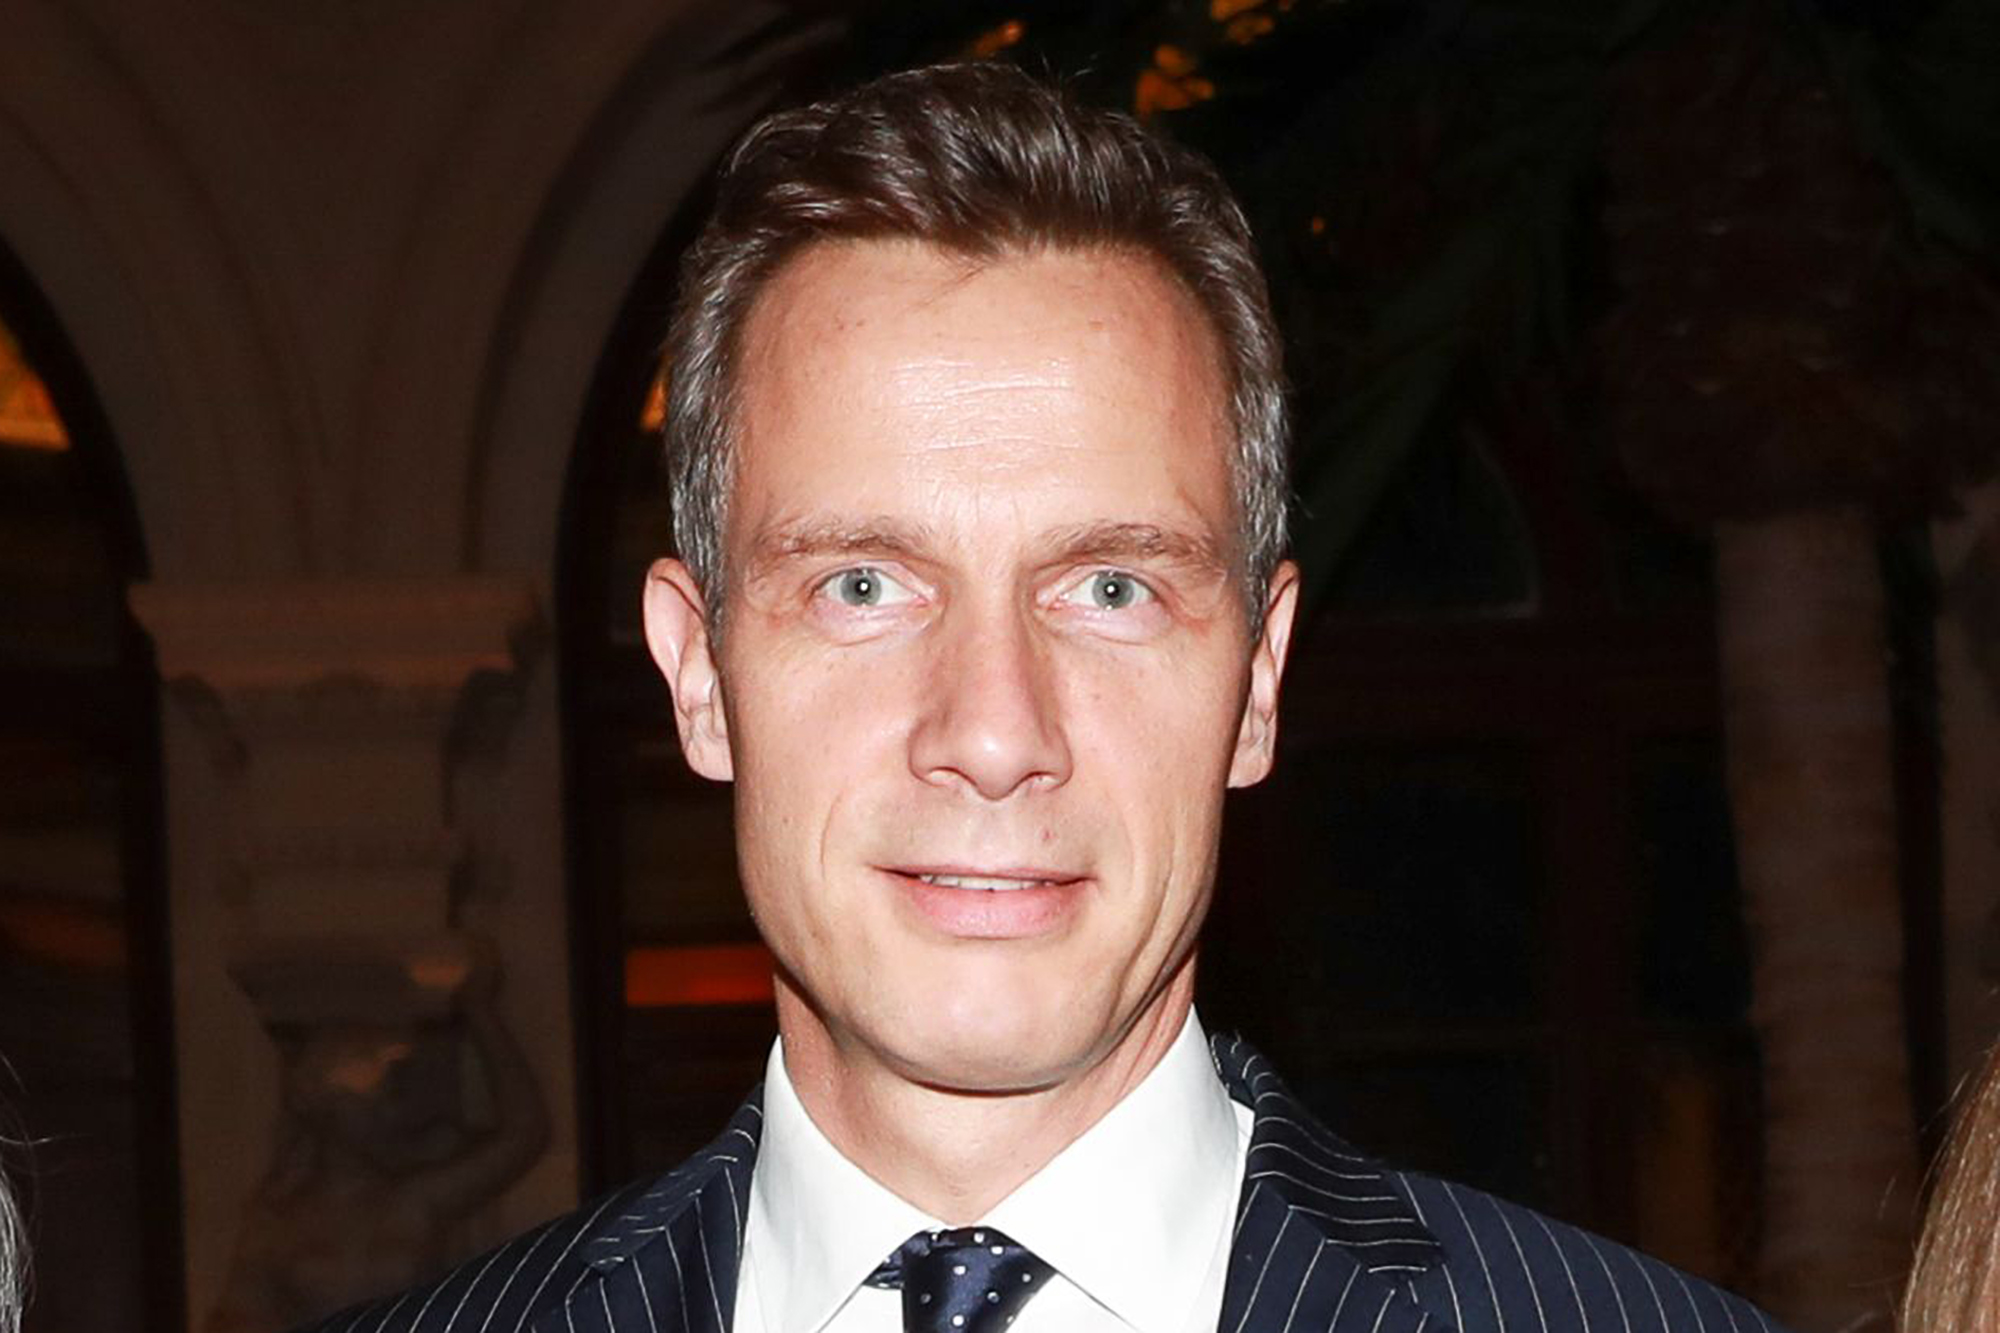 Neiman CEO Geoffroy van Raemdonck slammed for pay, lavish perk